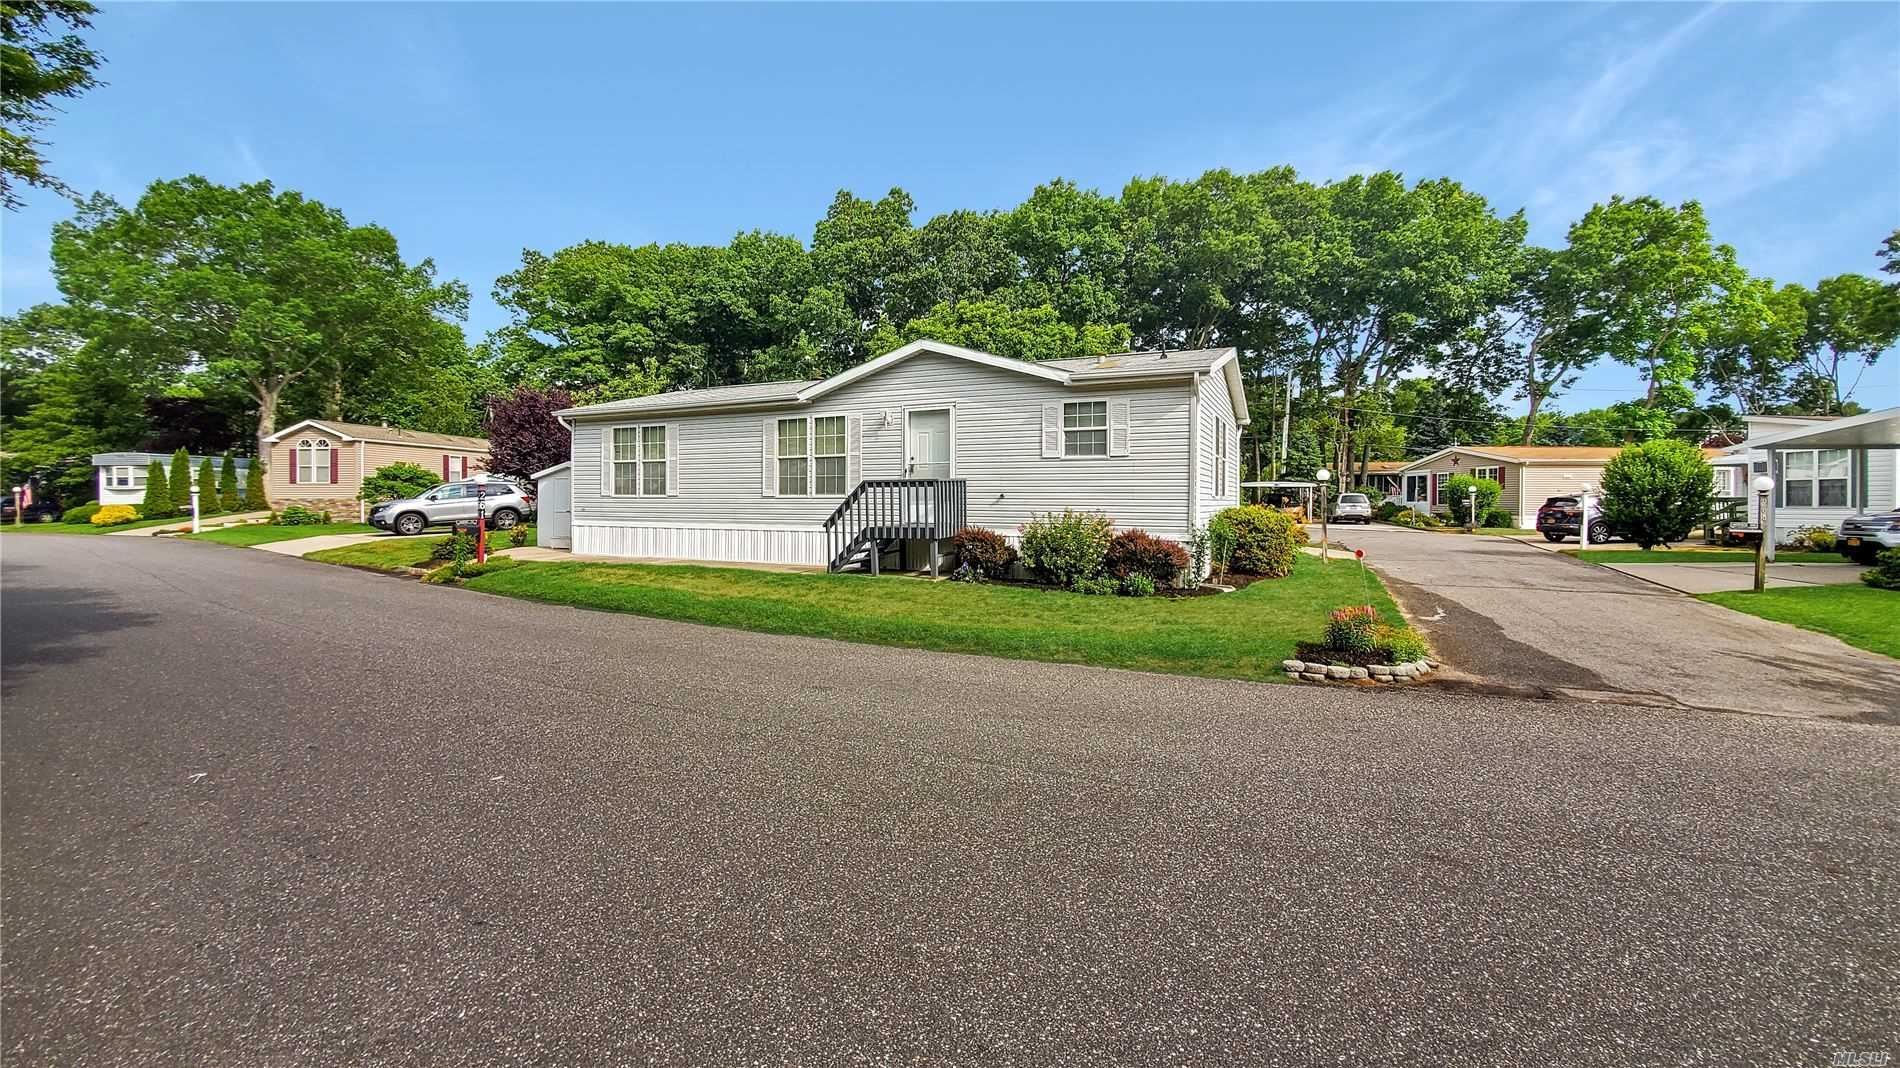 1661-261 Old Country Road, Riverhead, NY 11901 - MLS#: 3215546